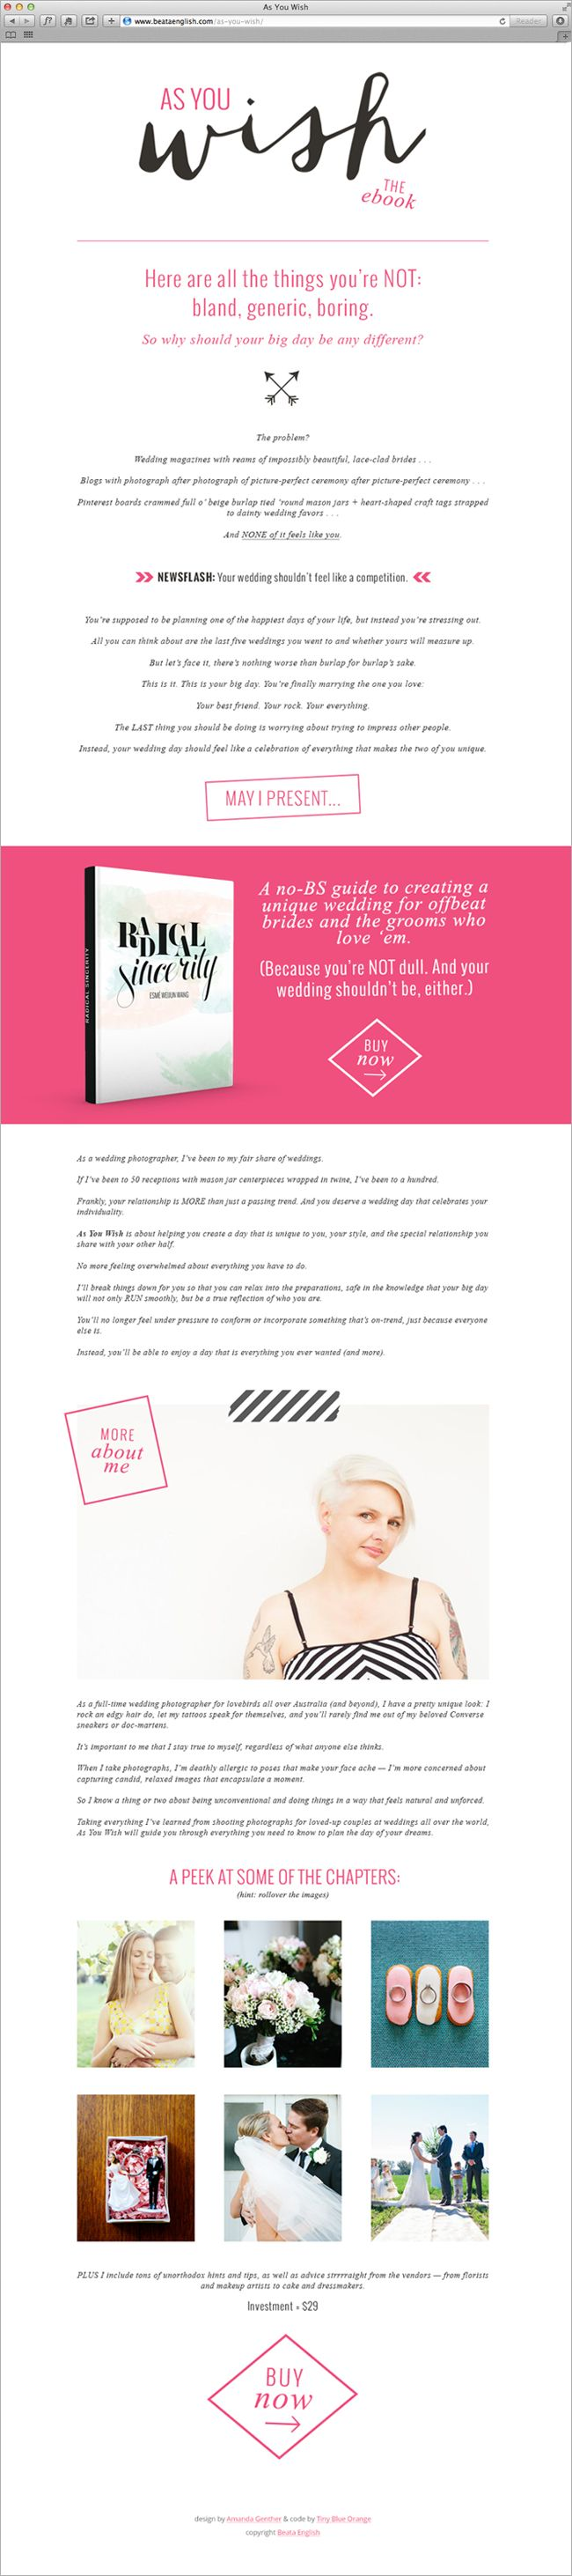 As You Wish | Sales Page Design